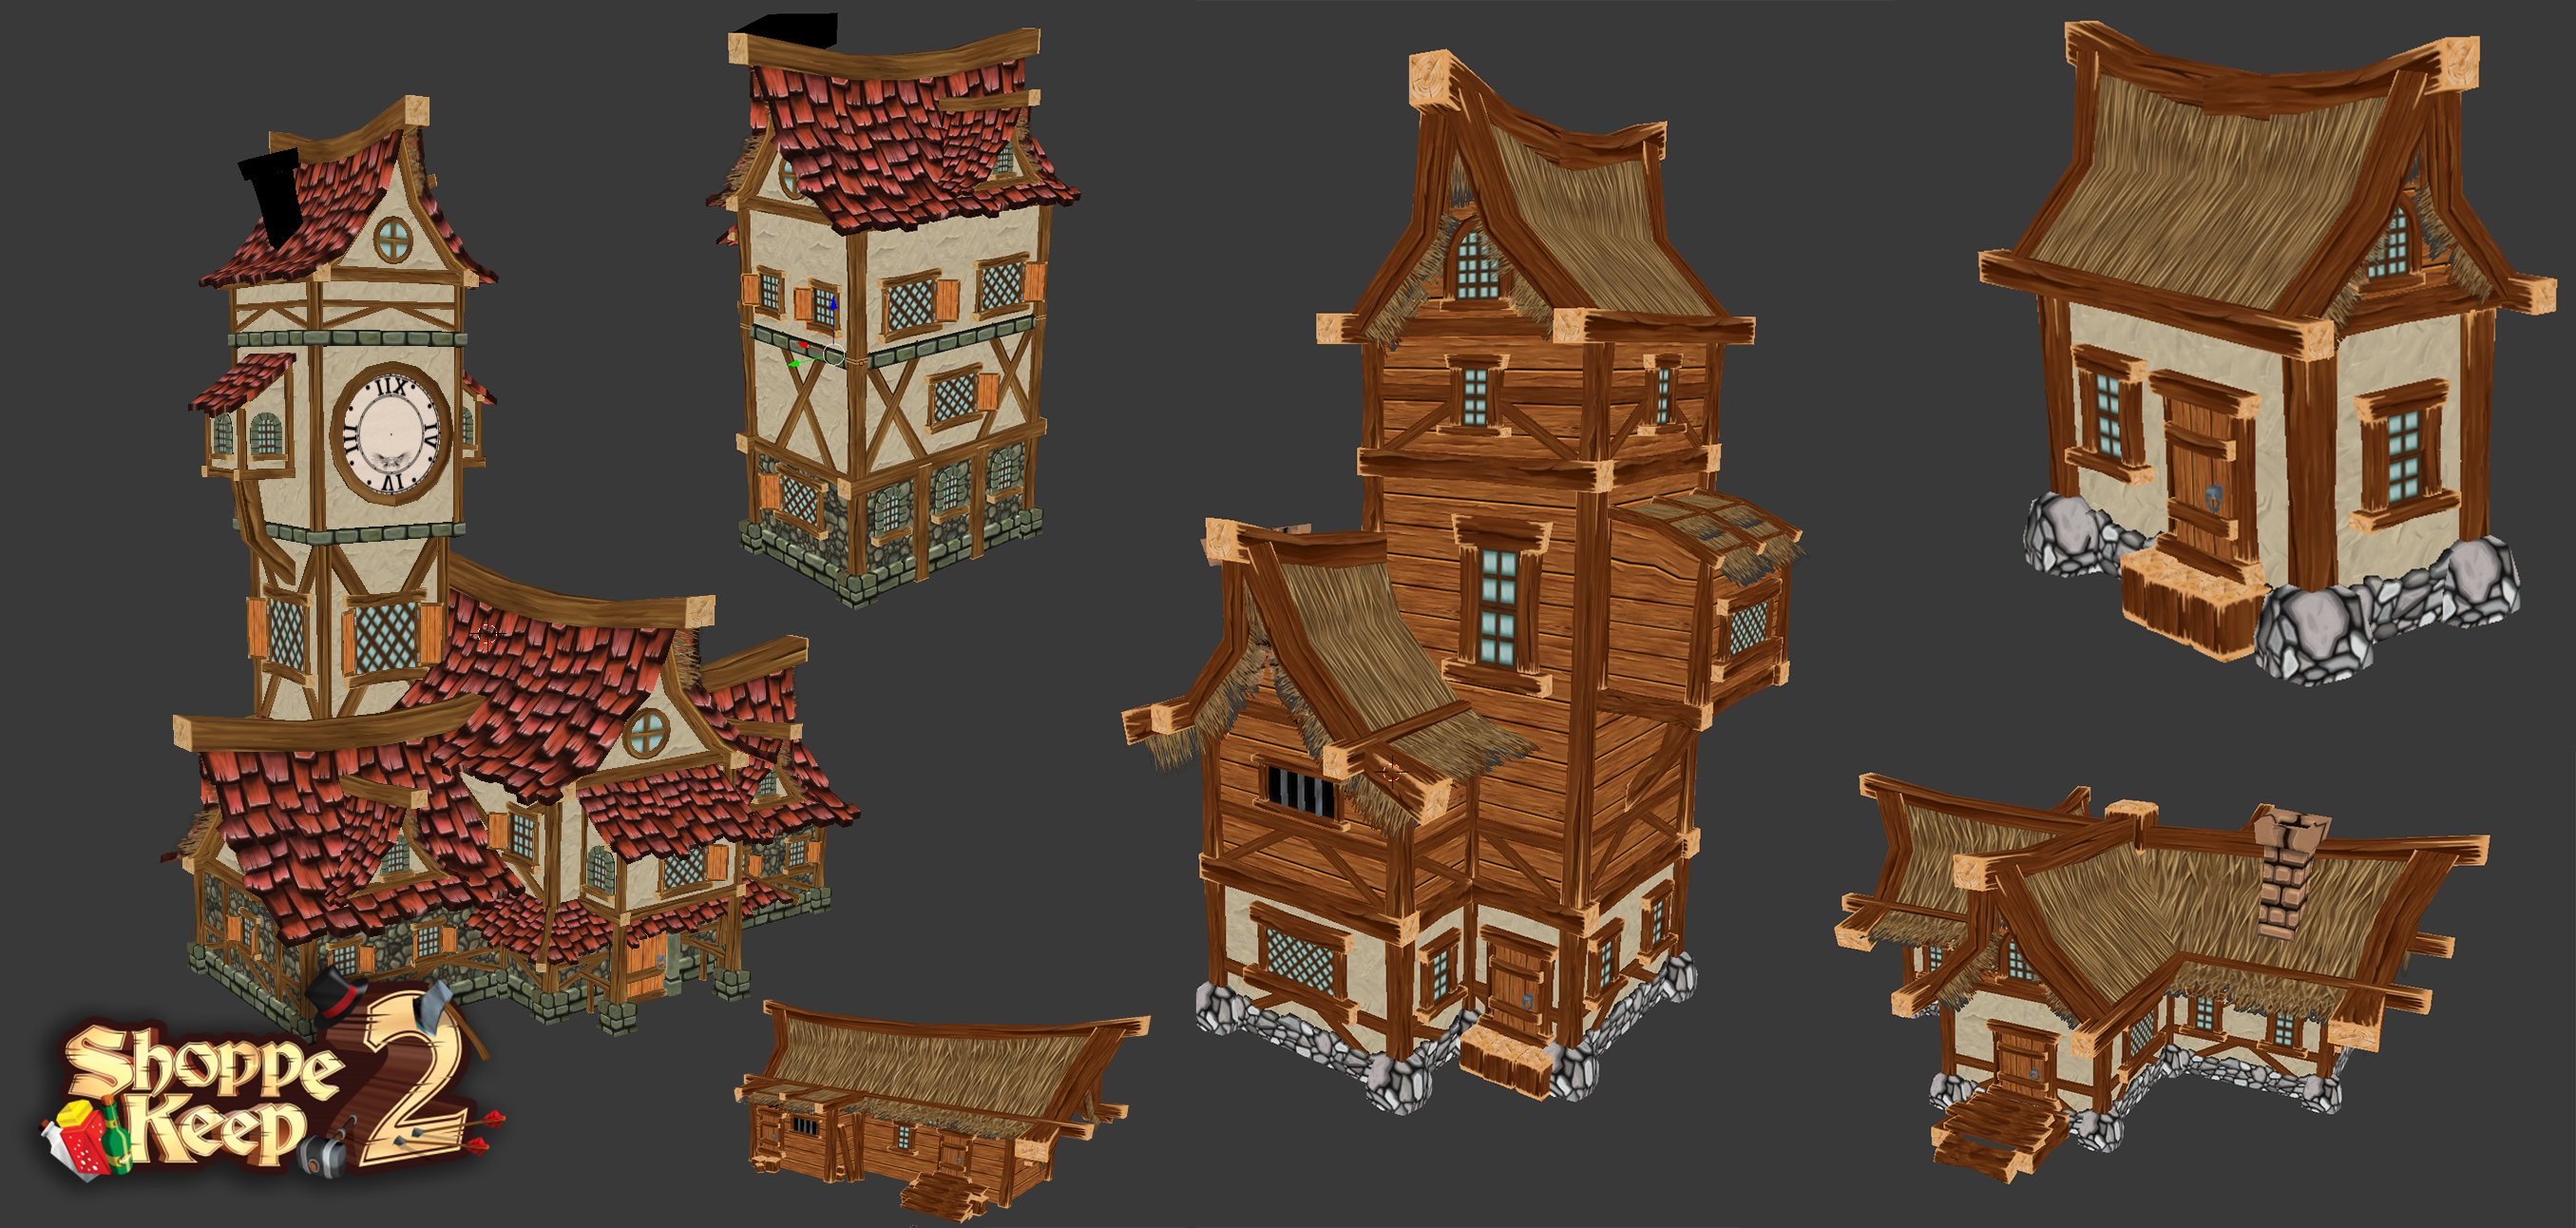 Shoppe Keep 2 - Building Variations